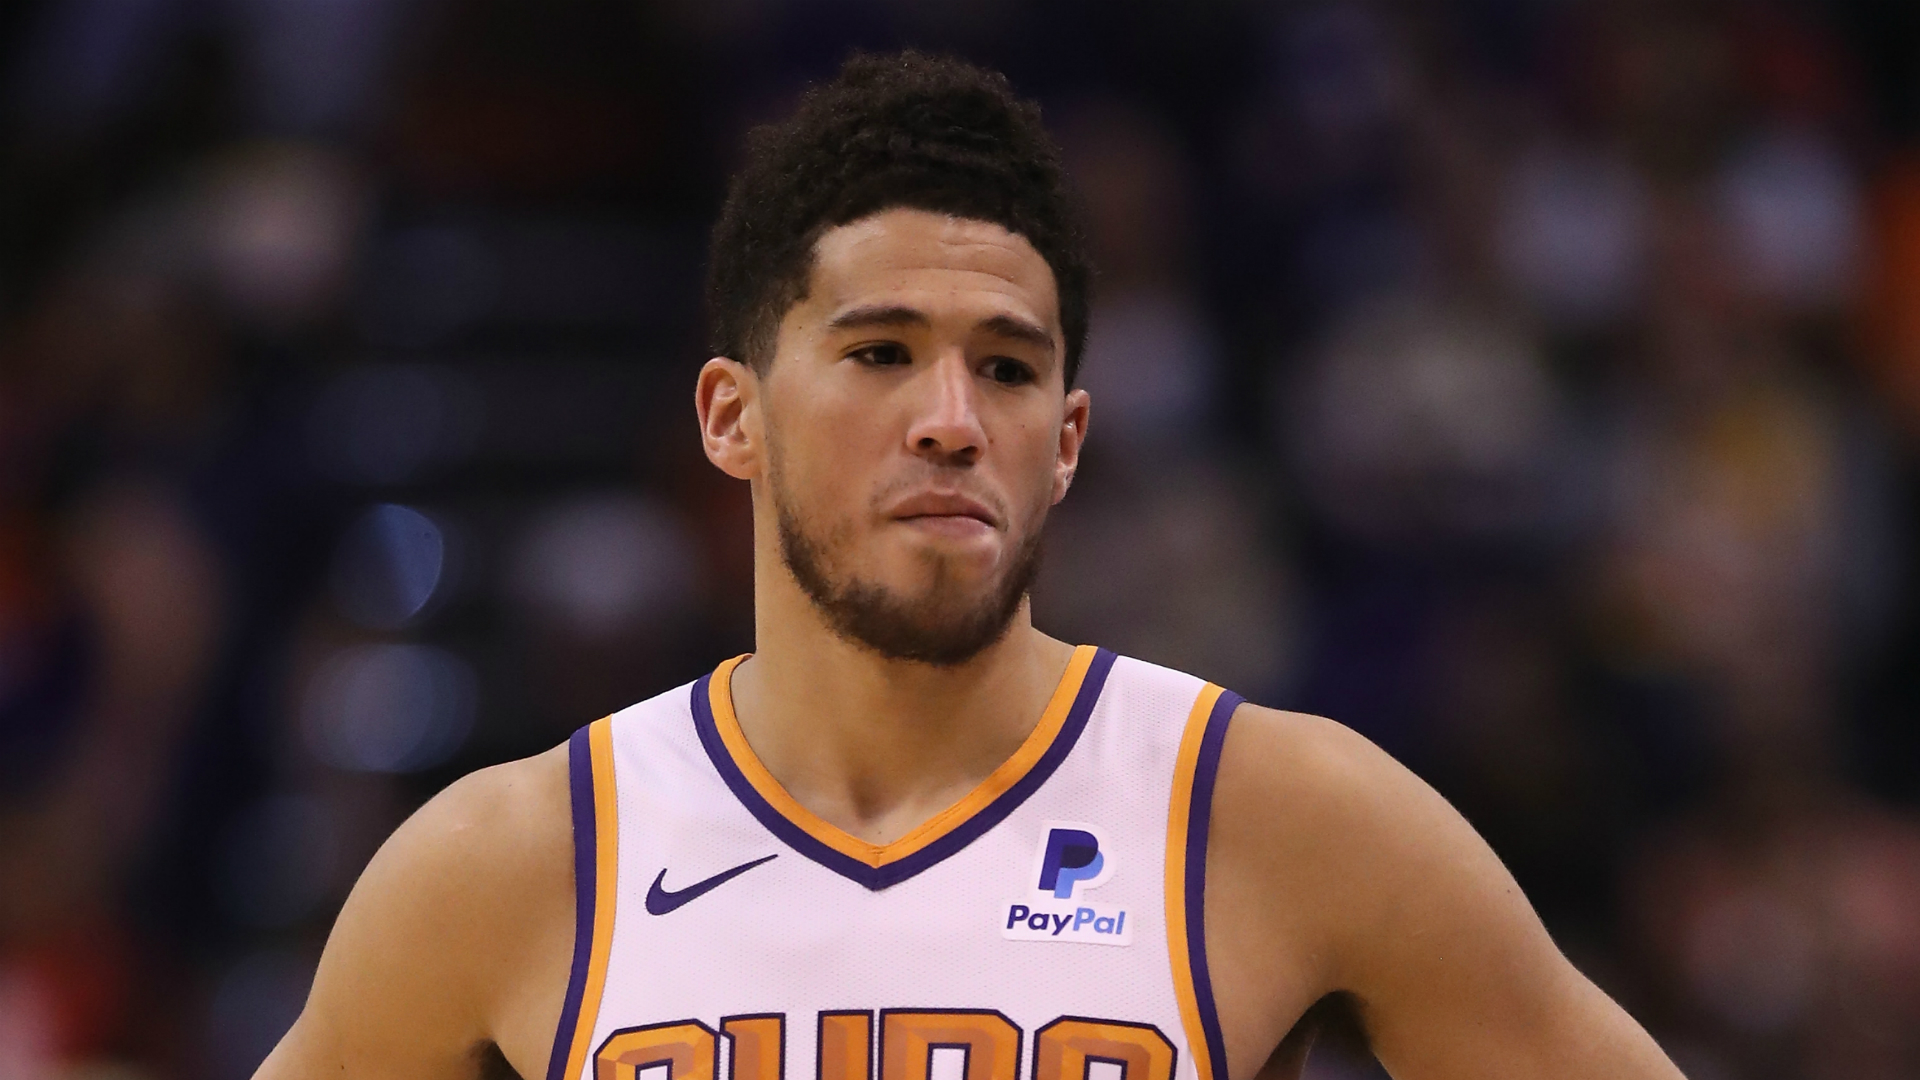 Booker overlooked as Butler and Westbrook snare NBA All-Star reserve spots